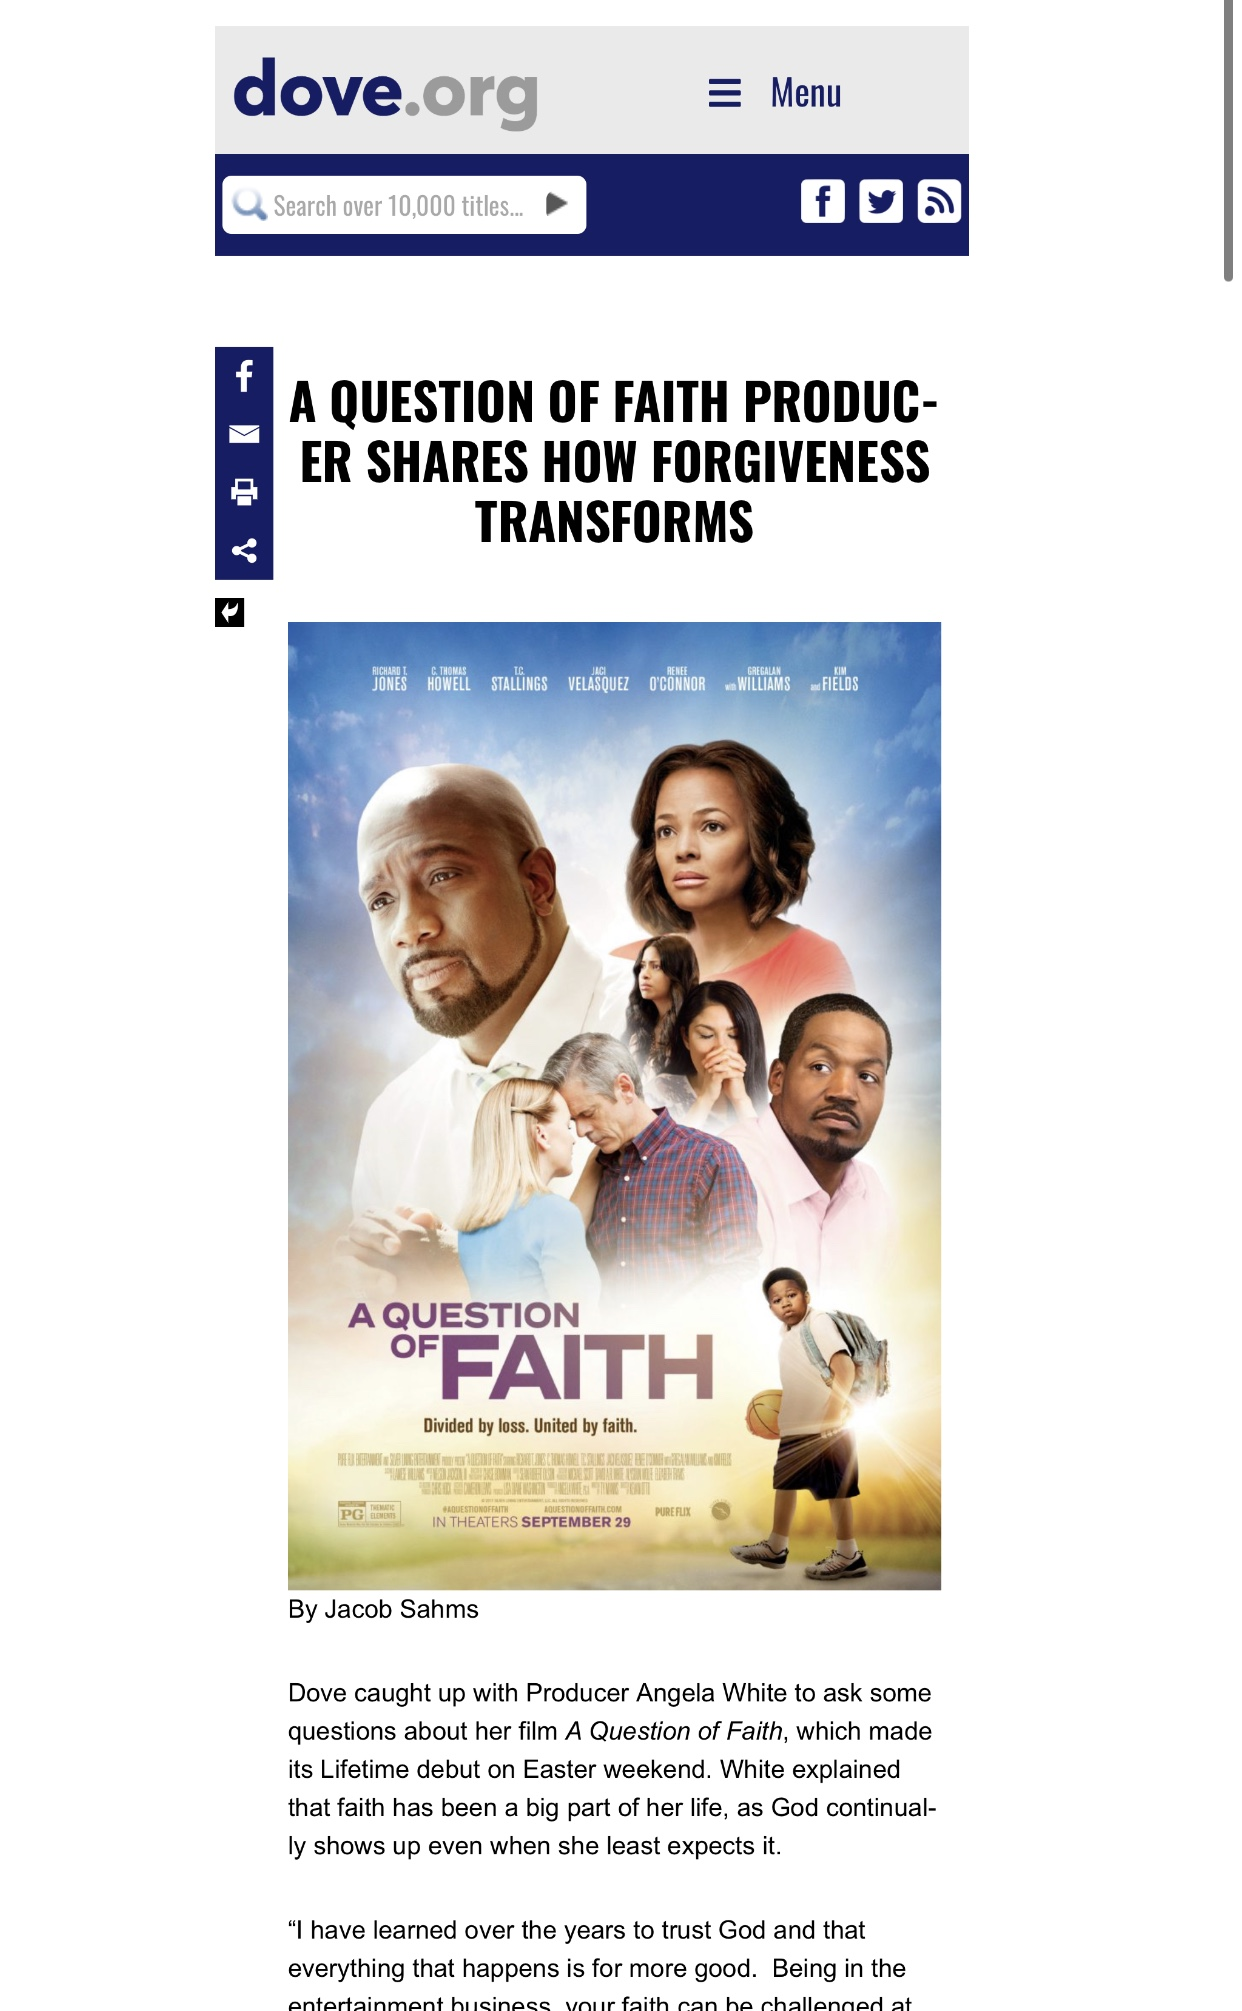 Dove.org with 'A Question of Faith'